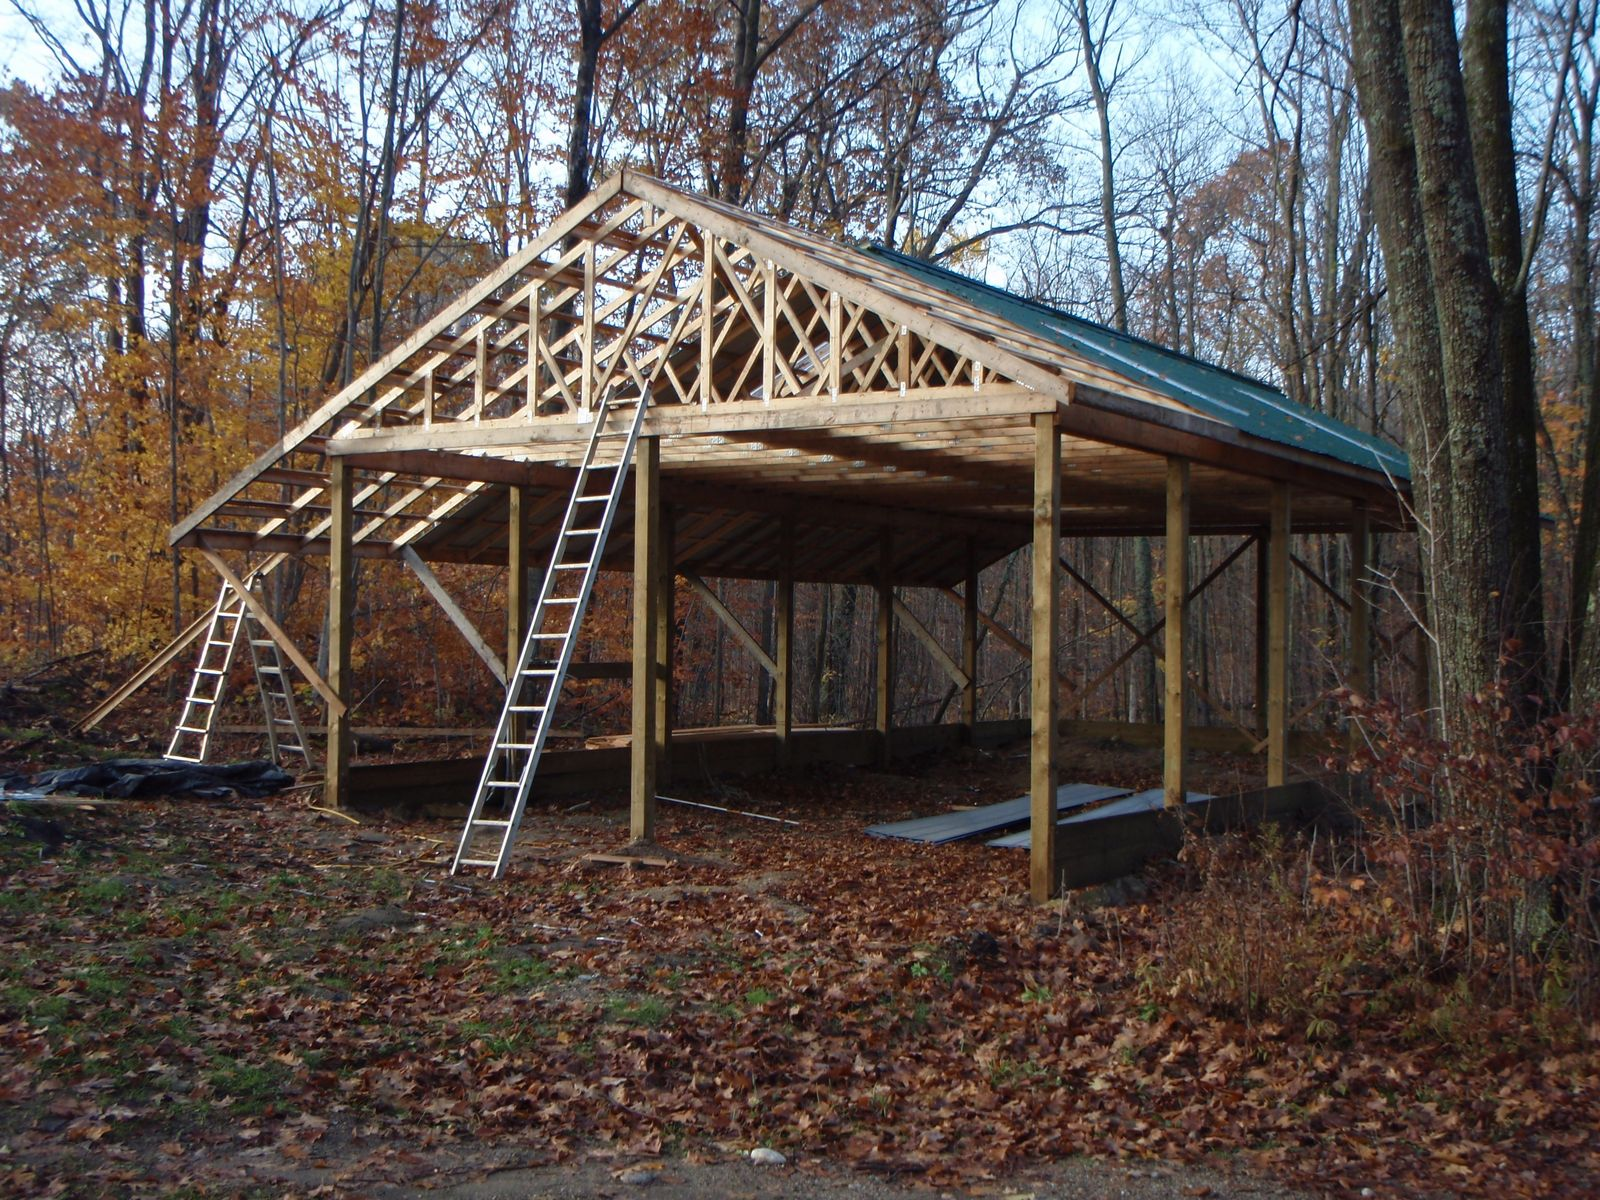 How to build a pole barn garage step by step joy studio for How to build pole barn house